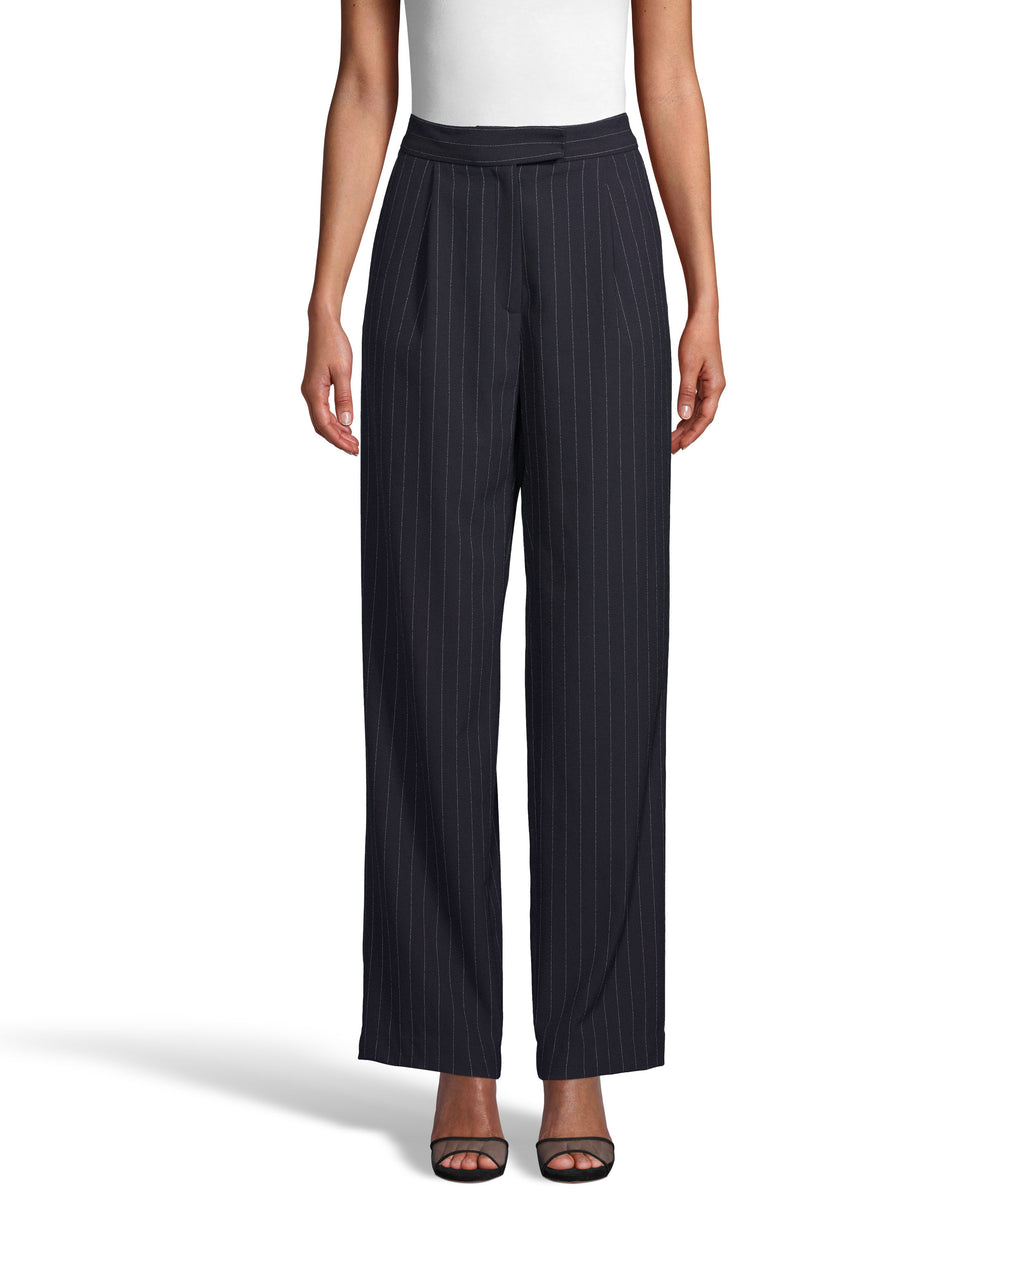 CP18233 - PINSTRIPE PLEATED FRONT FRONT TROUSER - bottoms - pants - These classic trousers have a flattering pleated front and hit just above the ankle. Featuring a hook and bar and zipper closure for a tailored finish. Add 1 line break Stylist tip: Pair with a white top and the matching jacket for a complete set.